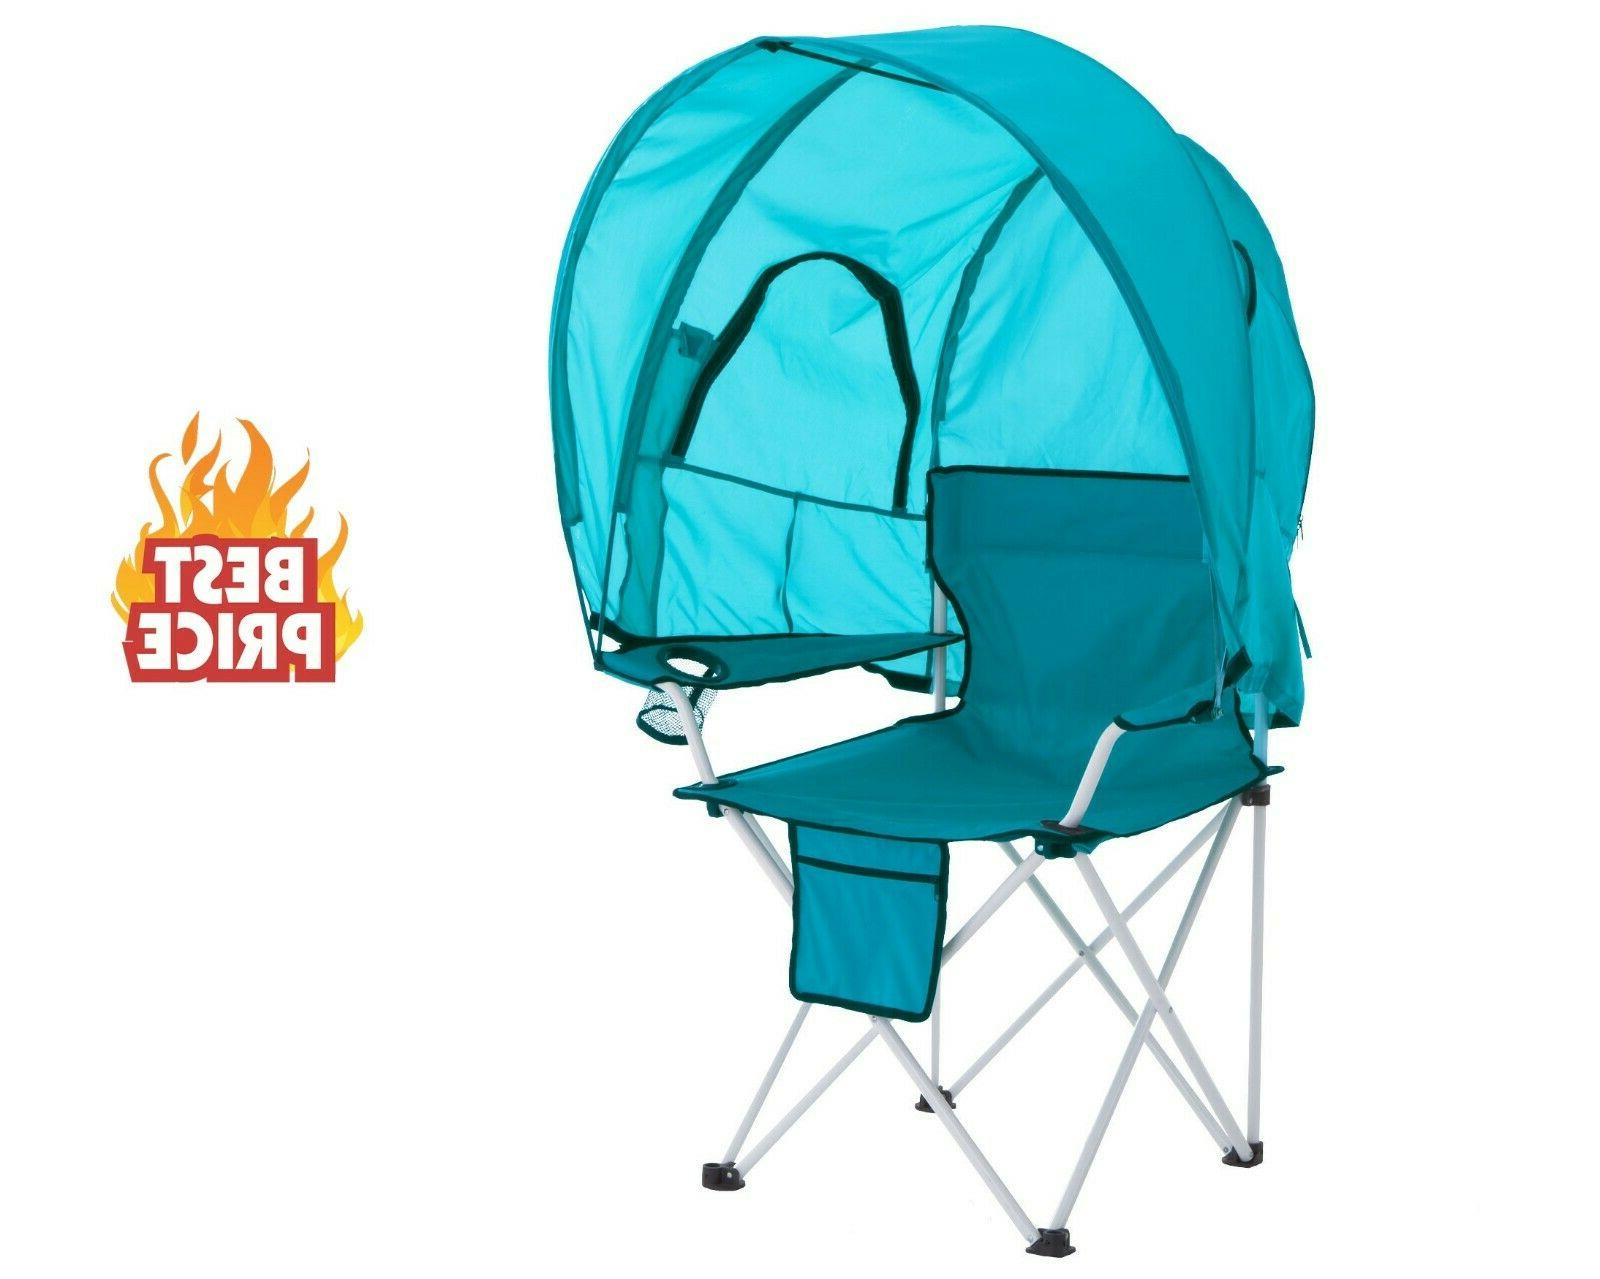 Portable Folding Beach Canopy Chair, Cup Holders Bag Camping